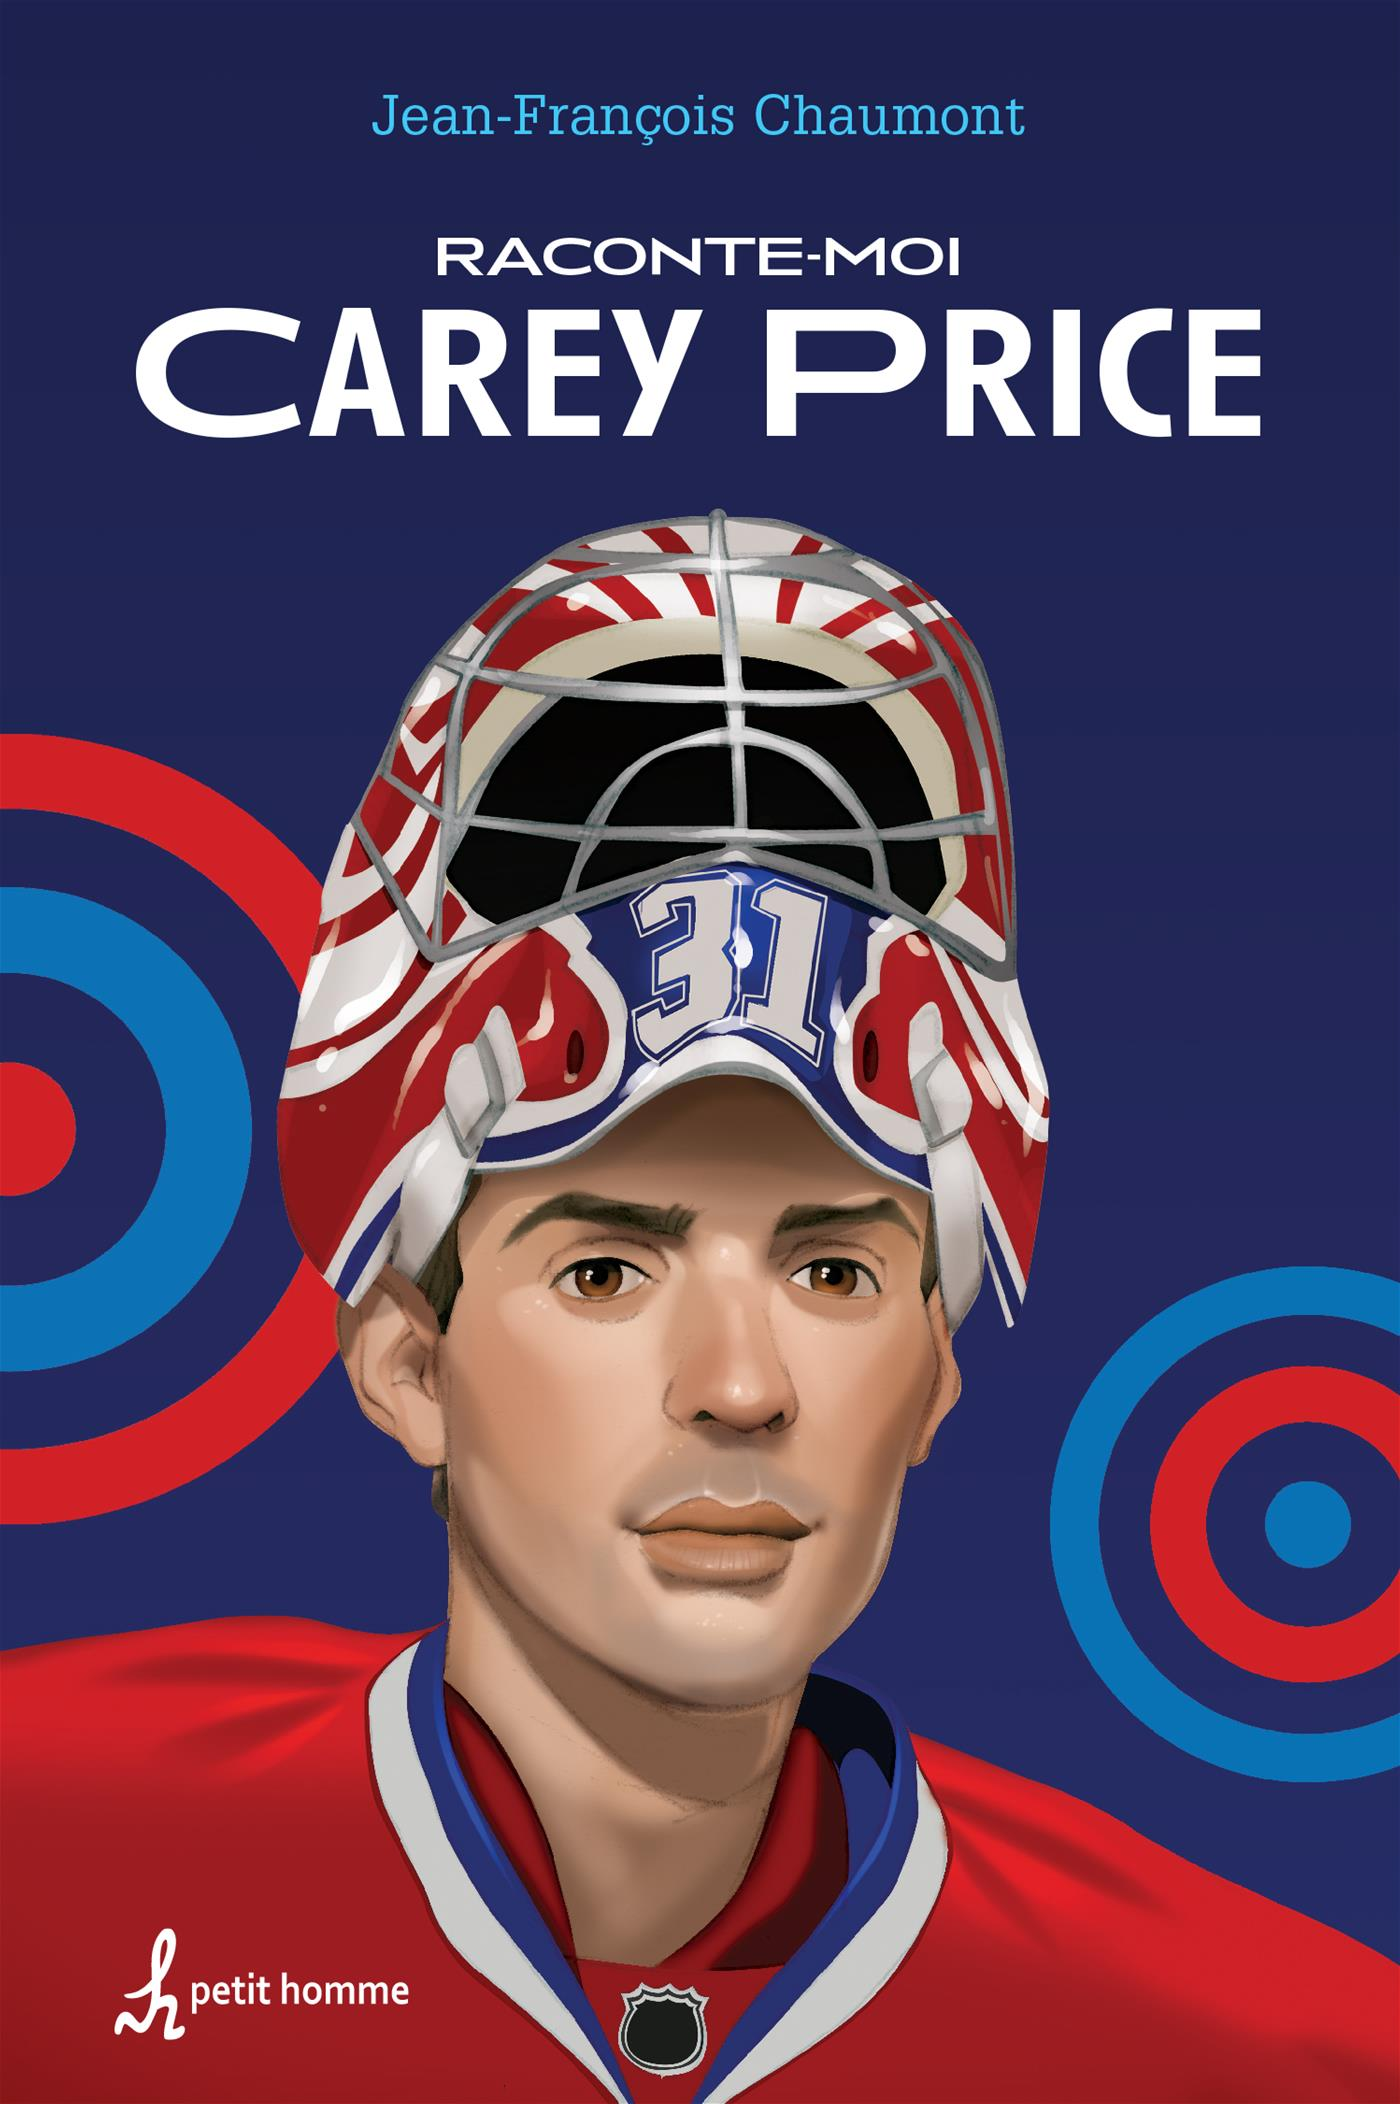 Raconte-moi Carey Price, Simon Dupuis